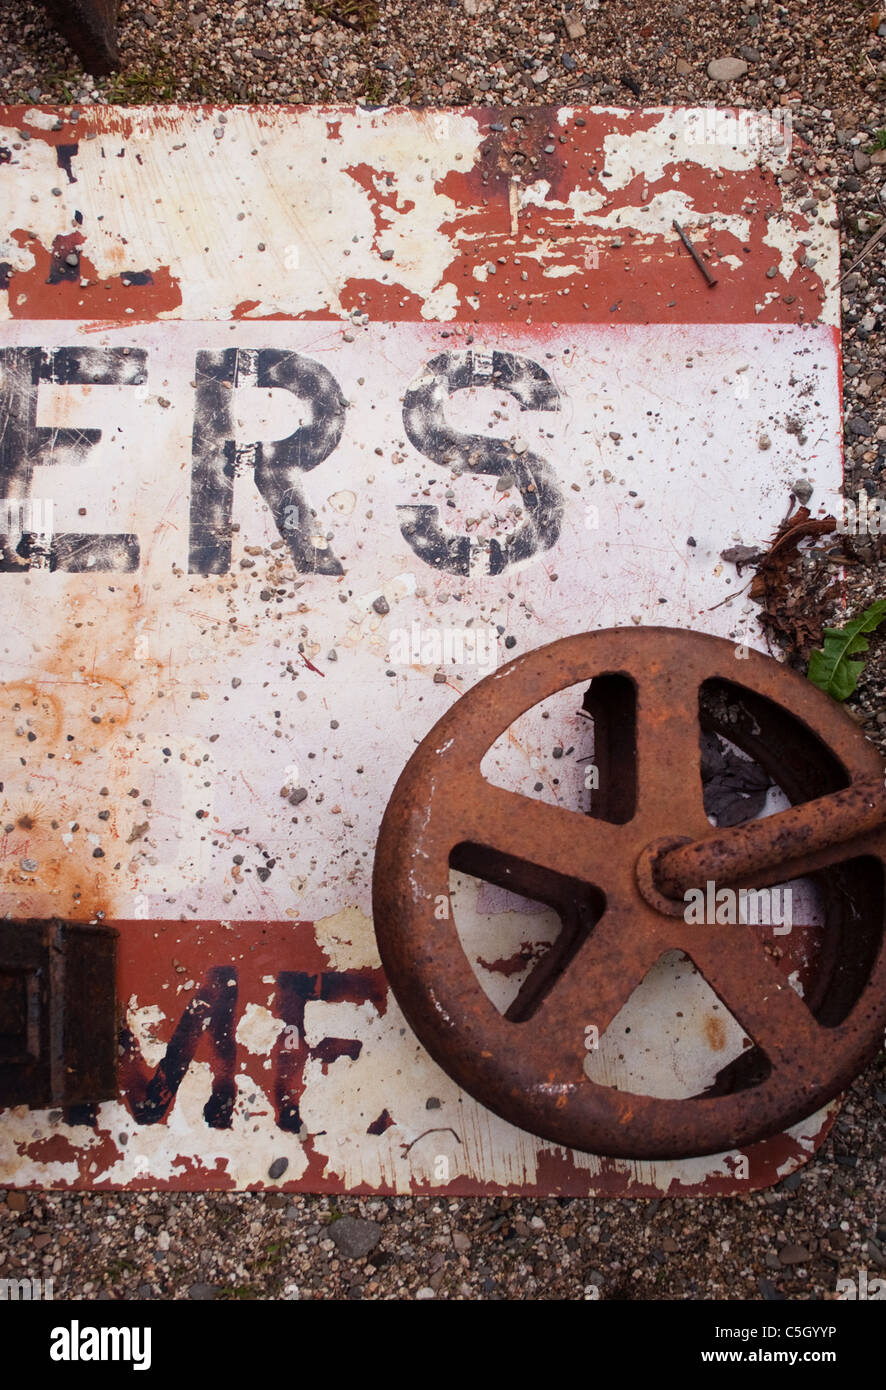 Abstract design of rusting, discarded commercial parts. - Stock Image